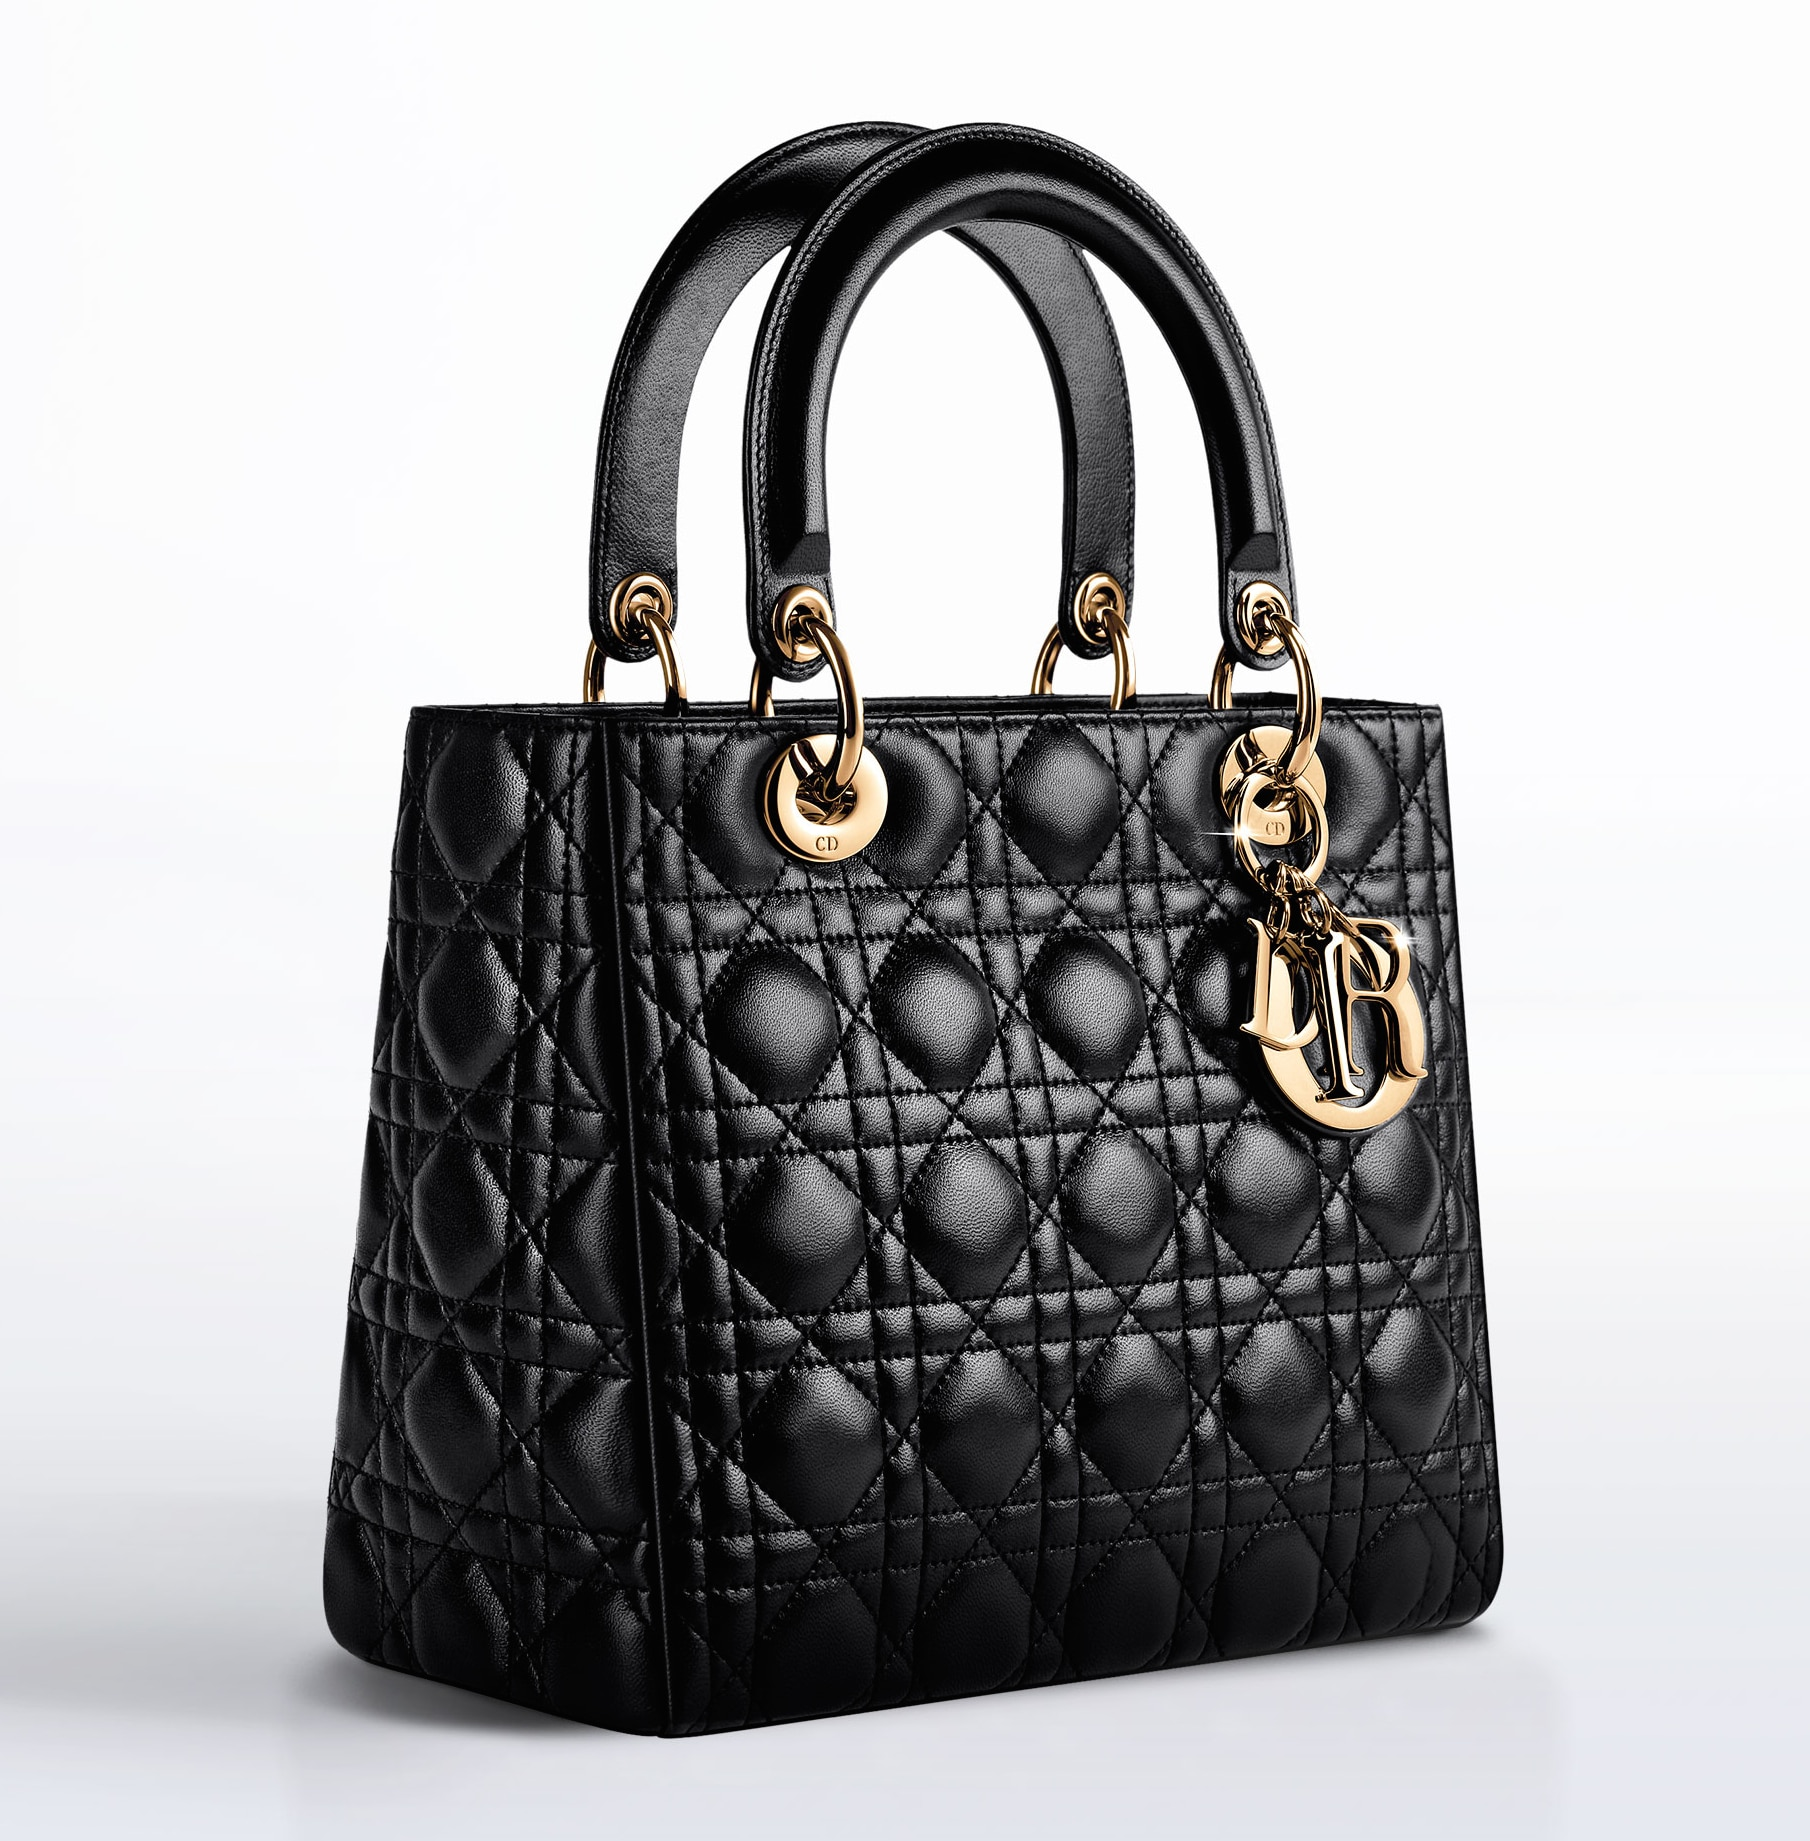 Lady Dior Bag Reference Guide